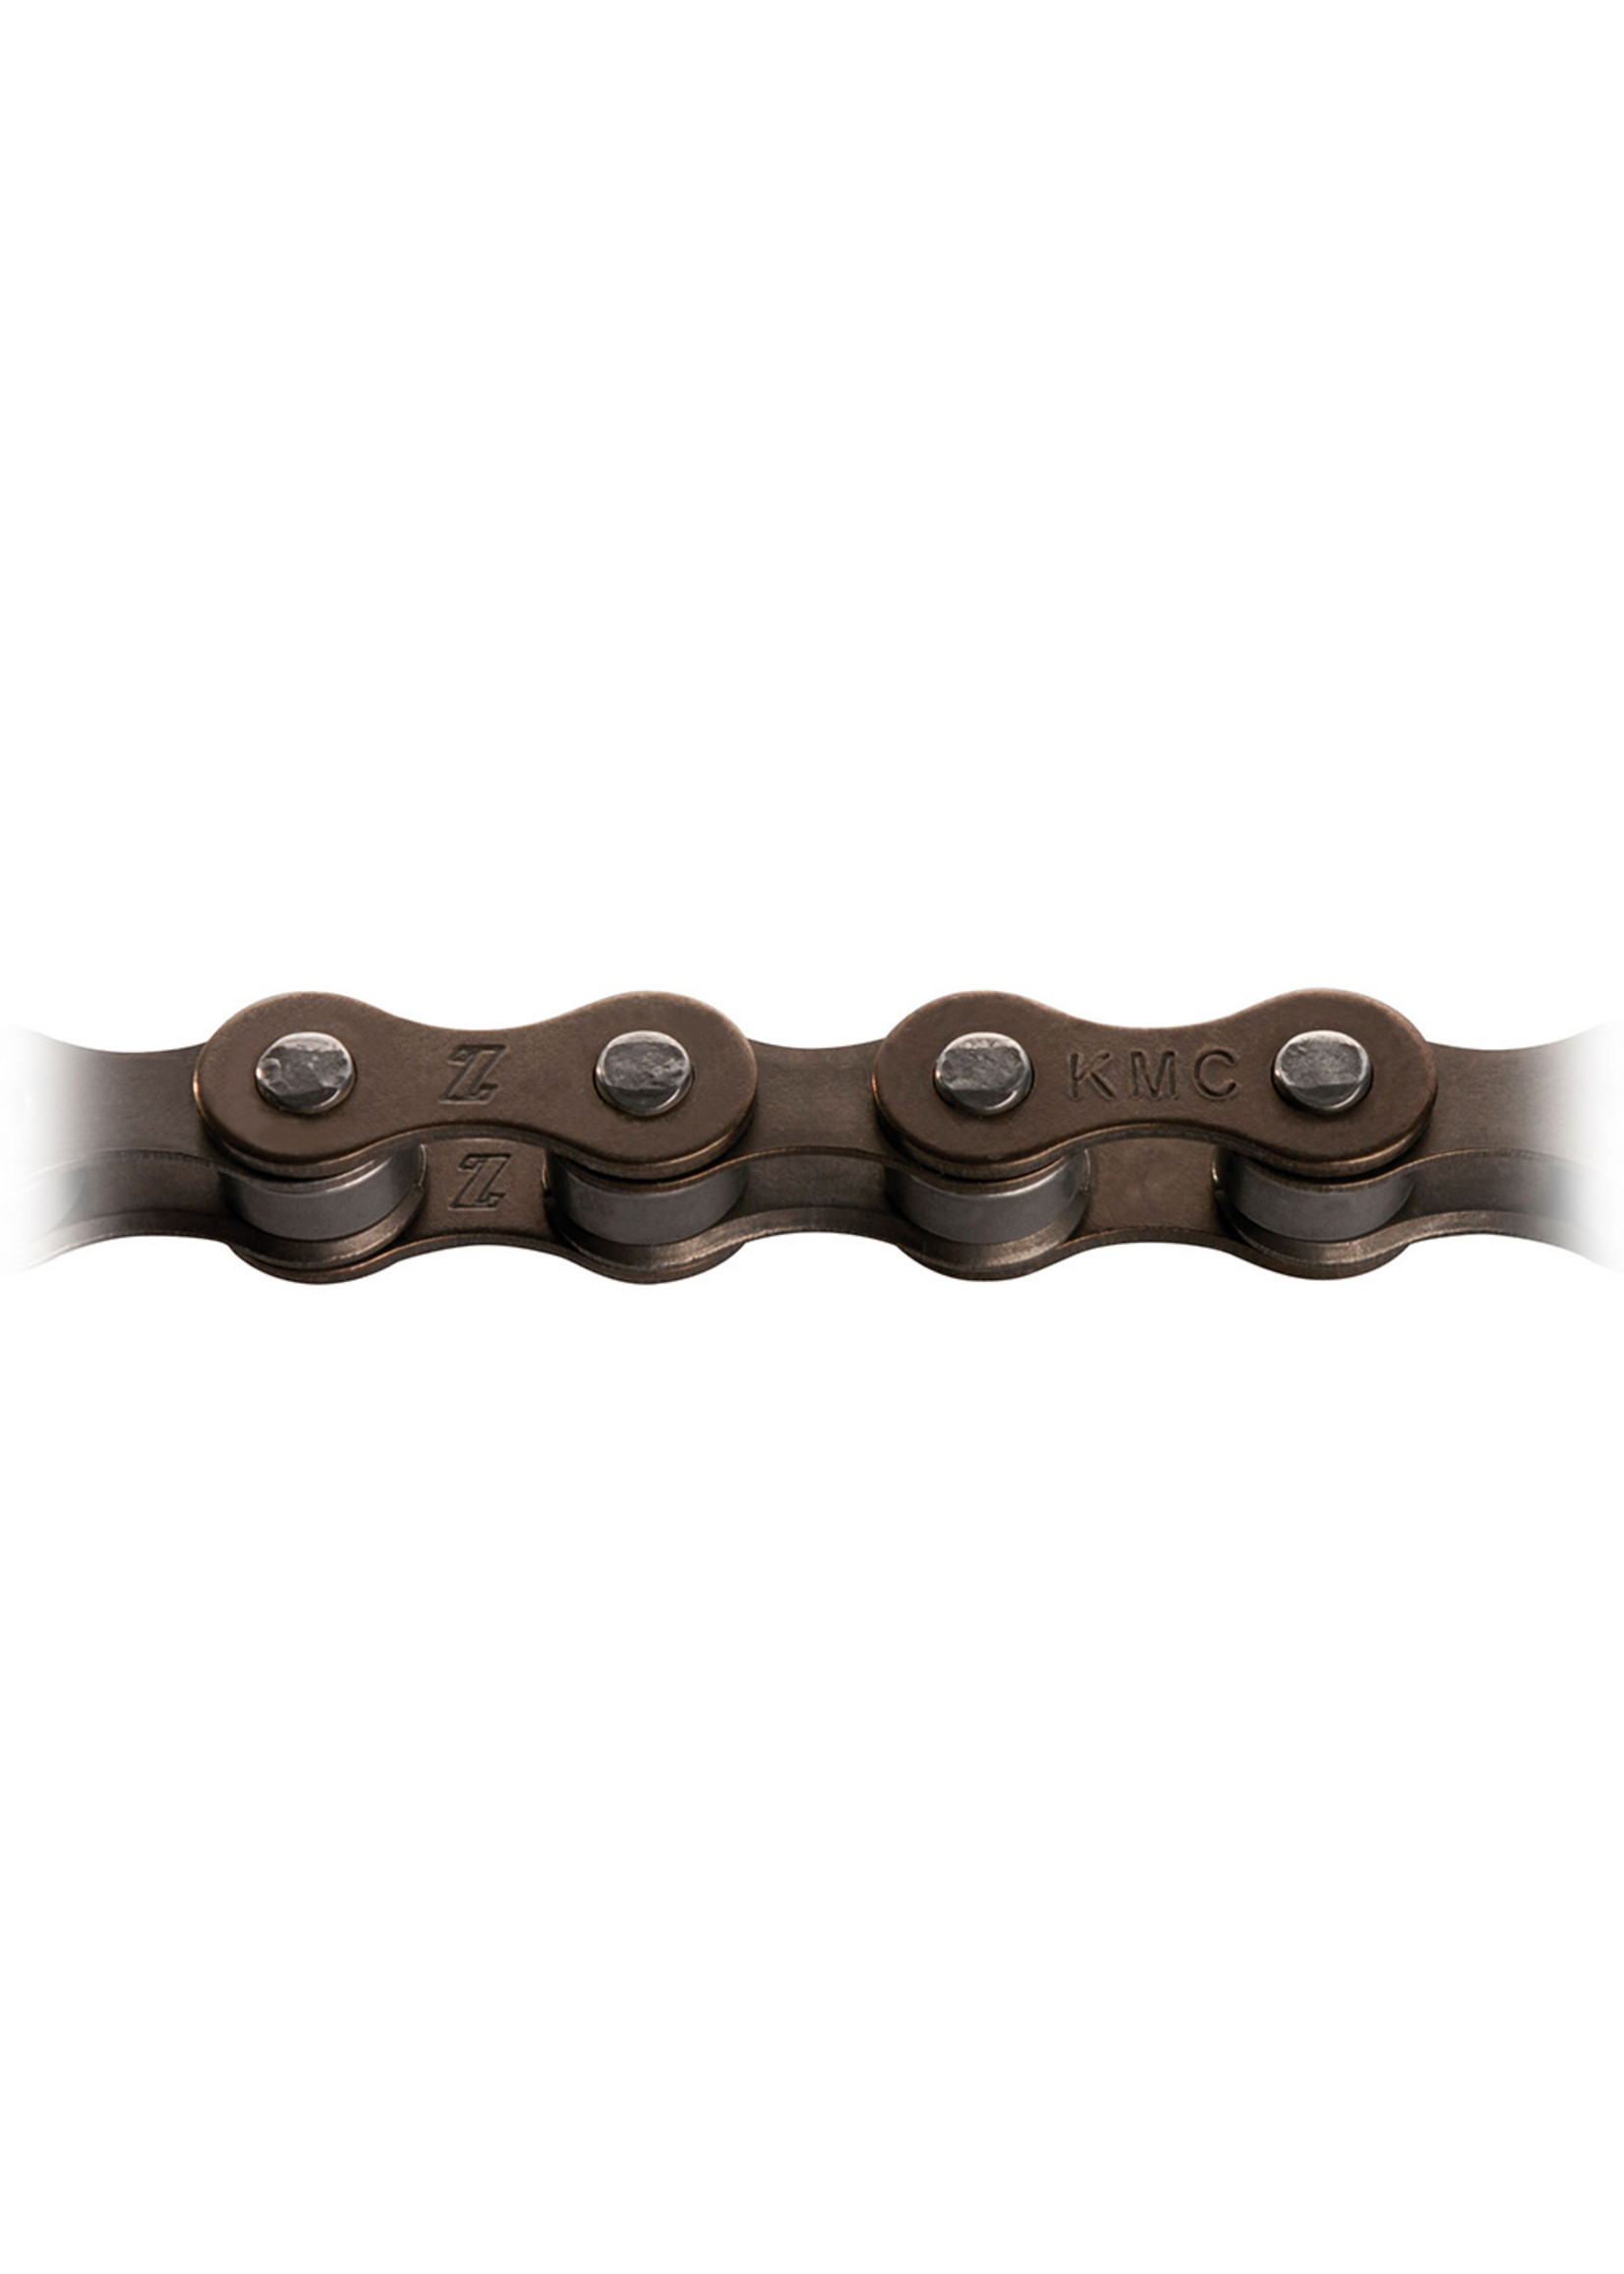 KMC S1 For Tour, City & Fixed Gear Brown (KMC010)